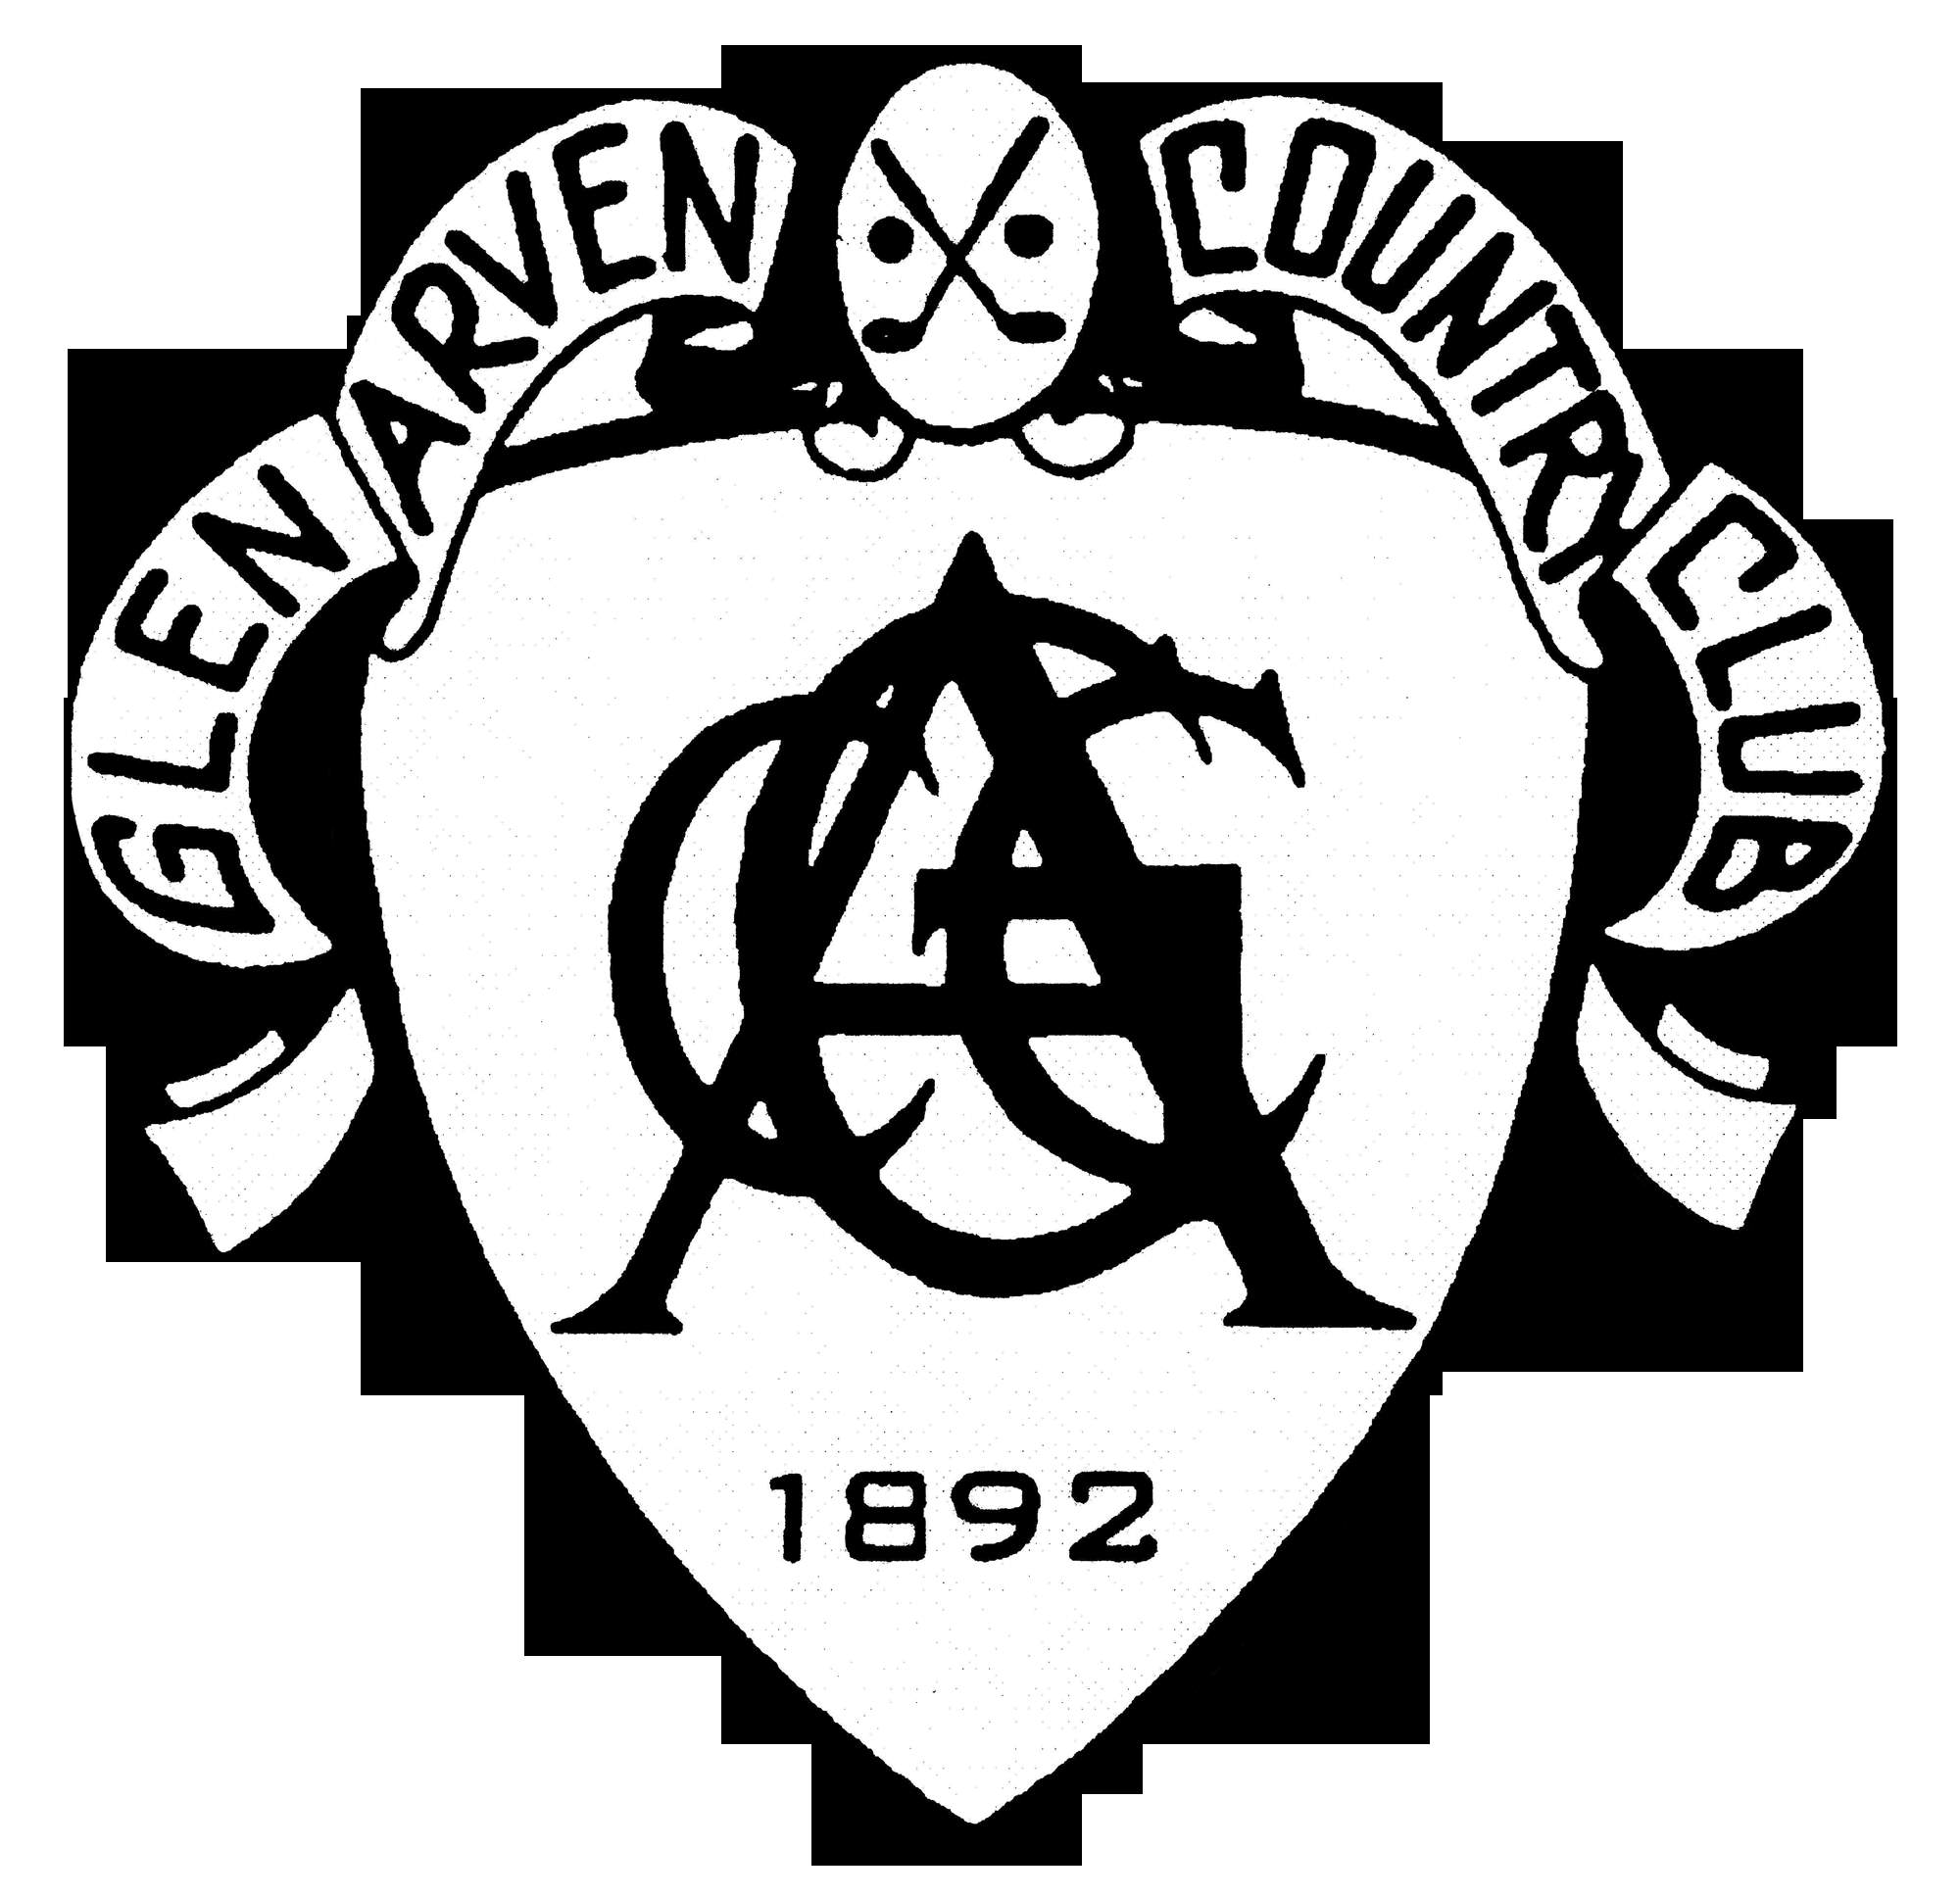 Glen Arven Country Club logo